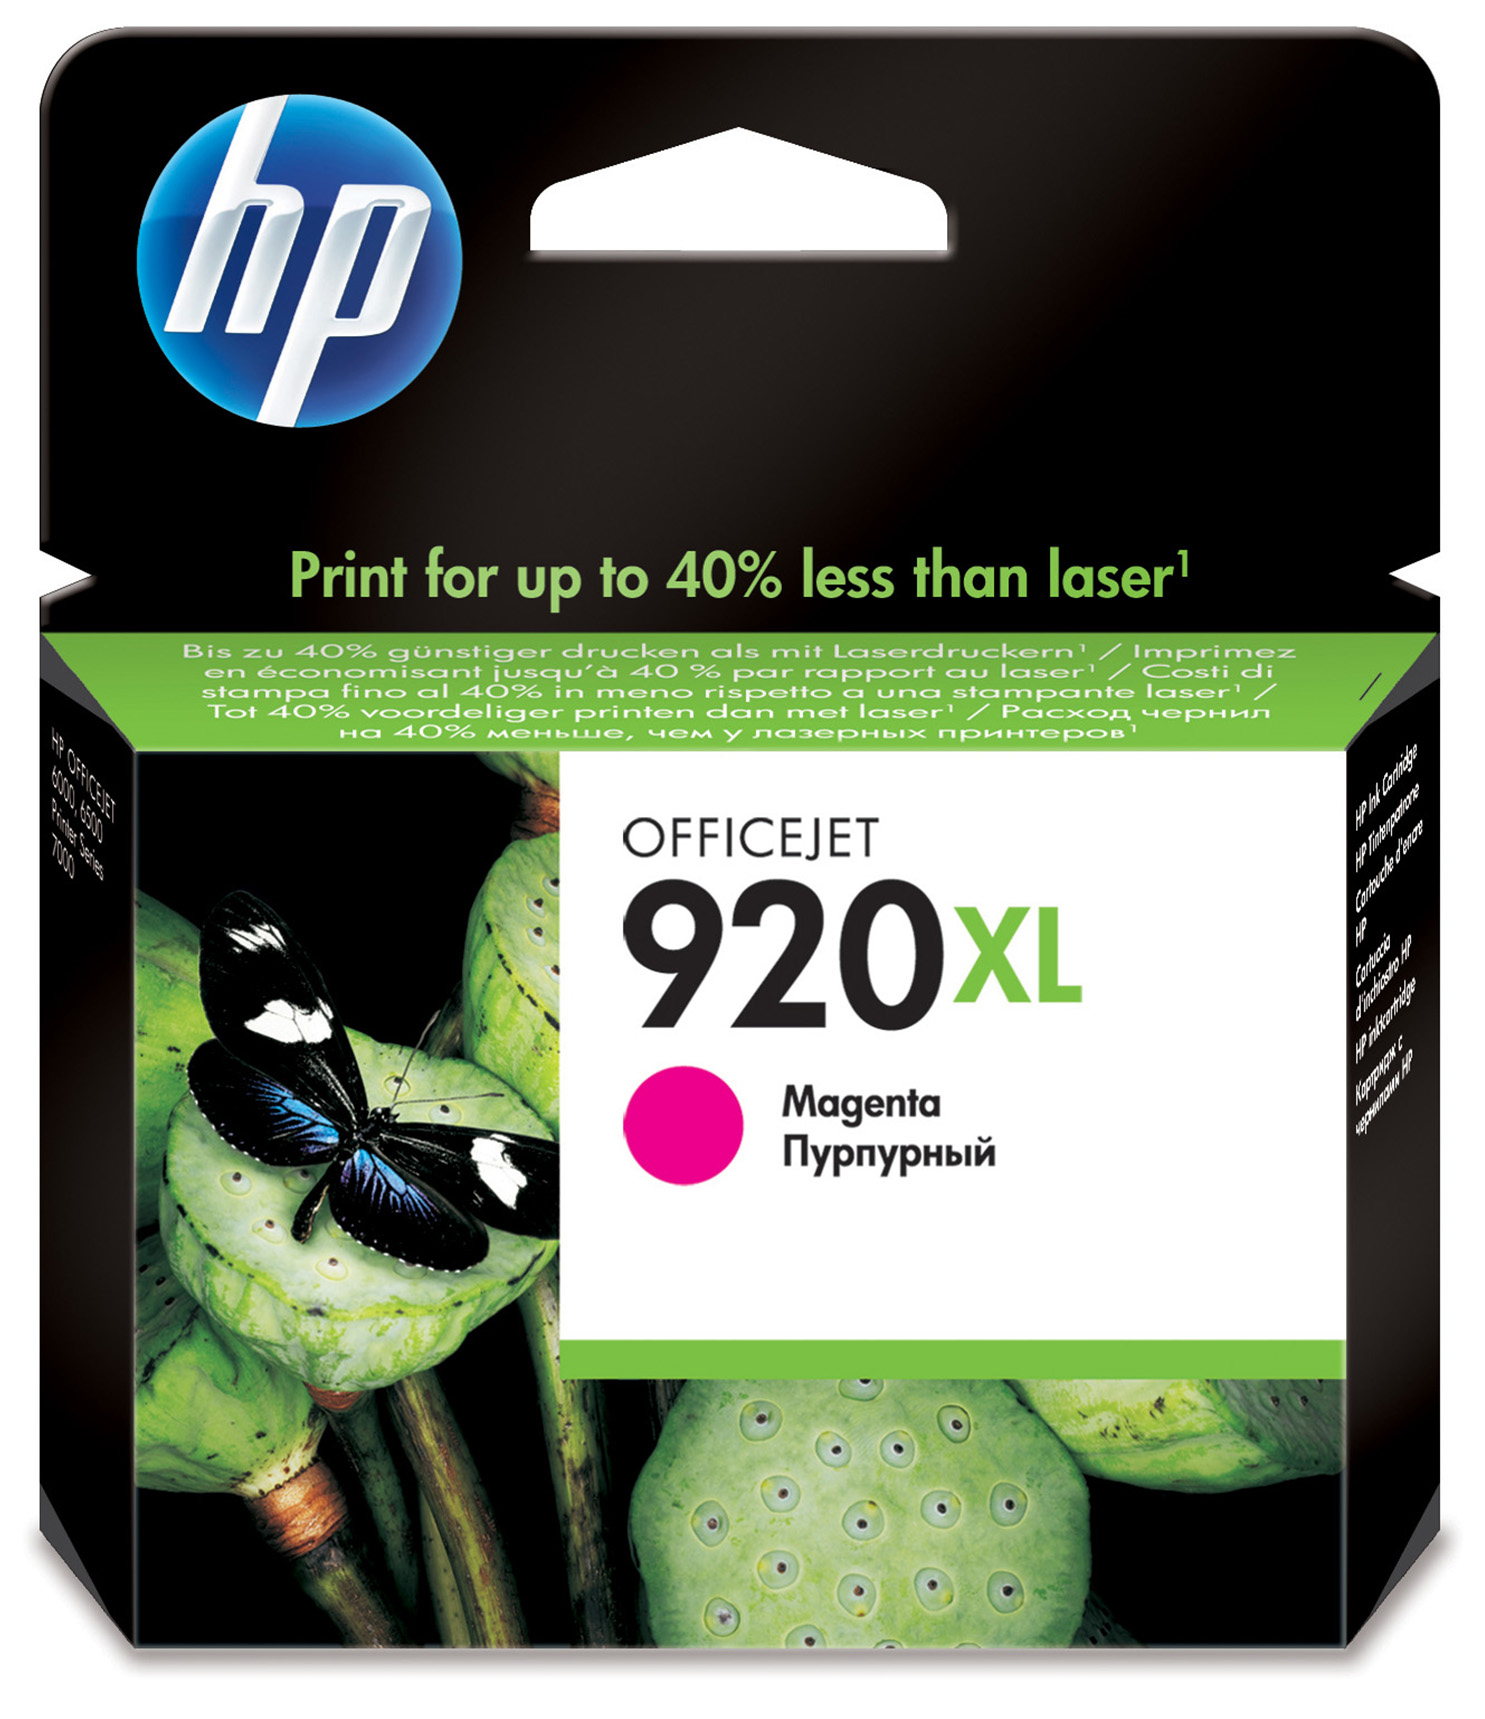 Compatible HP CD973AE (920XL) Magenta Ink Cartridge CD973AE - rem01